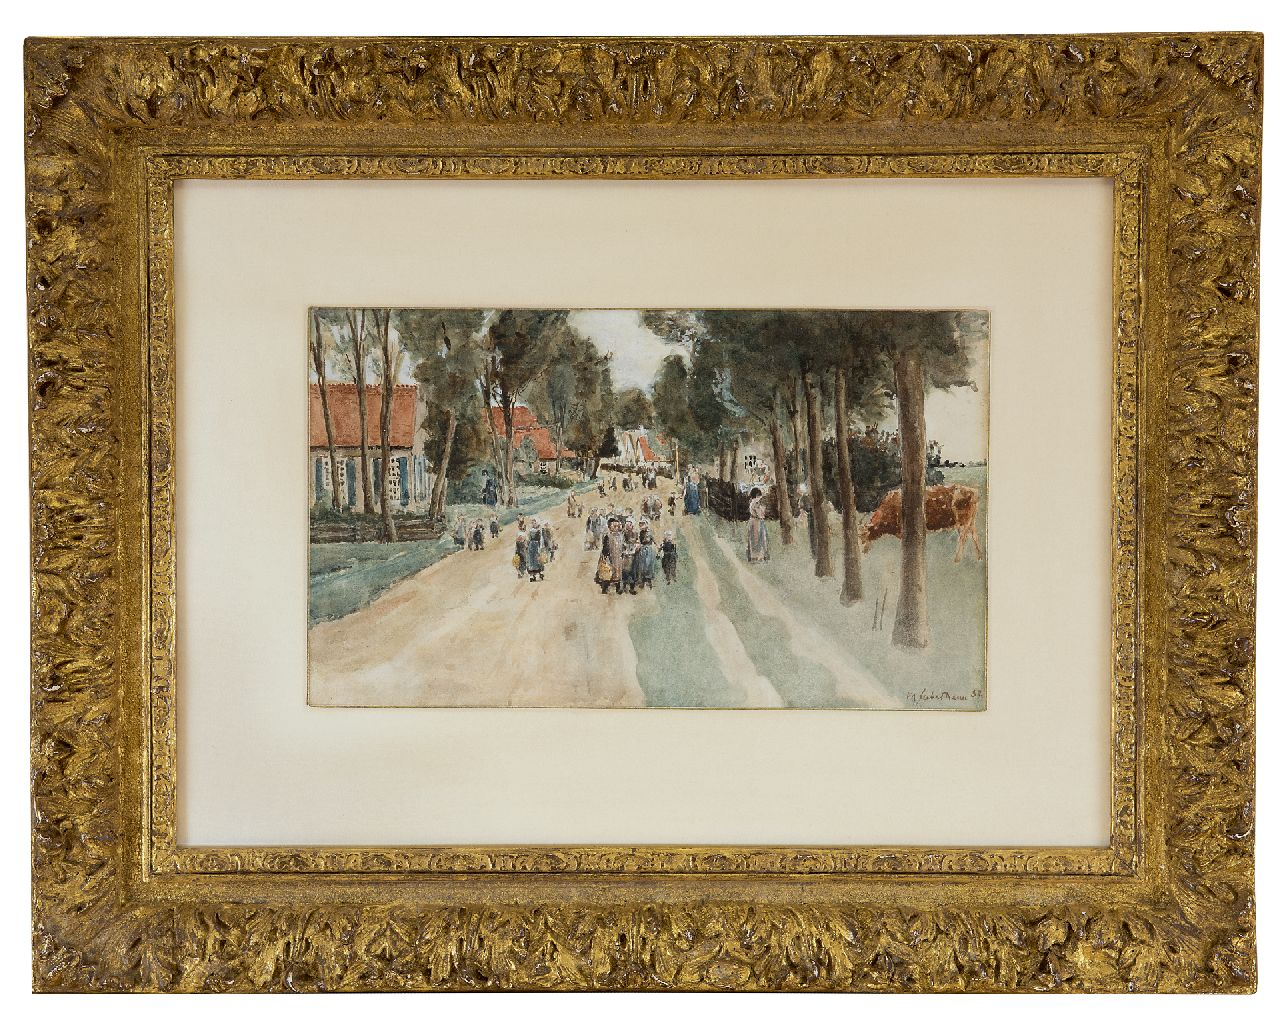 Liebermann M.  | Max Liebermann | Watercolours and drawings offered for sale | A village street in Holland, watercolour on paper 18.3 x 29.7 cm, signed l.r. and dated '82